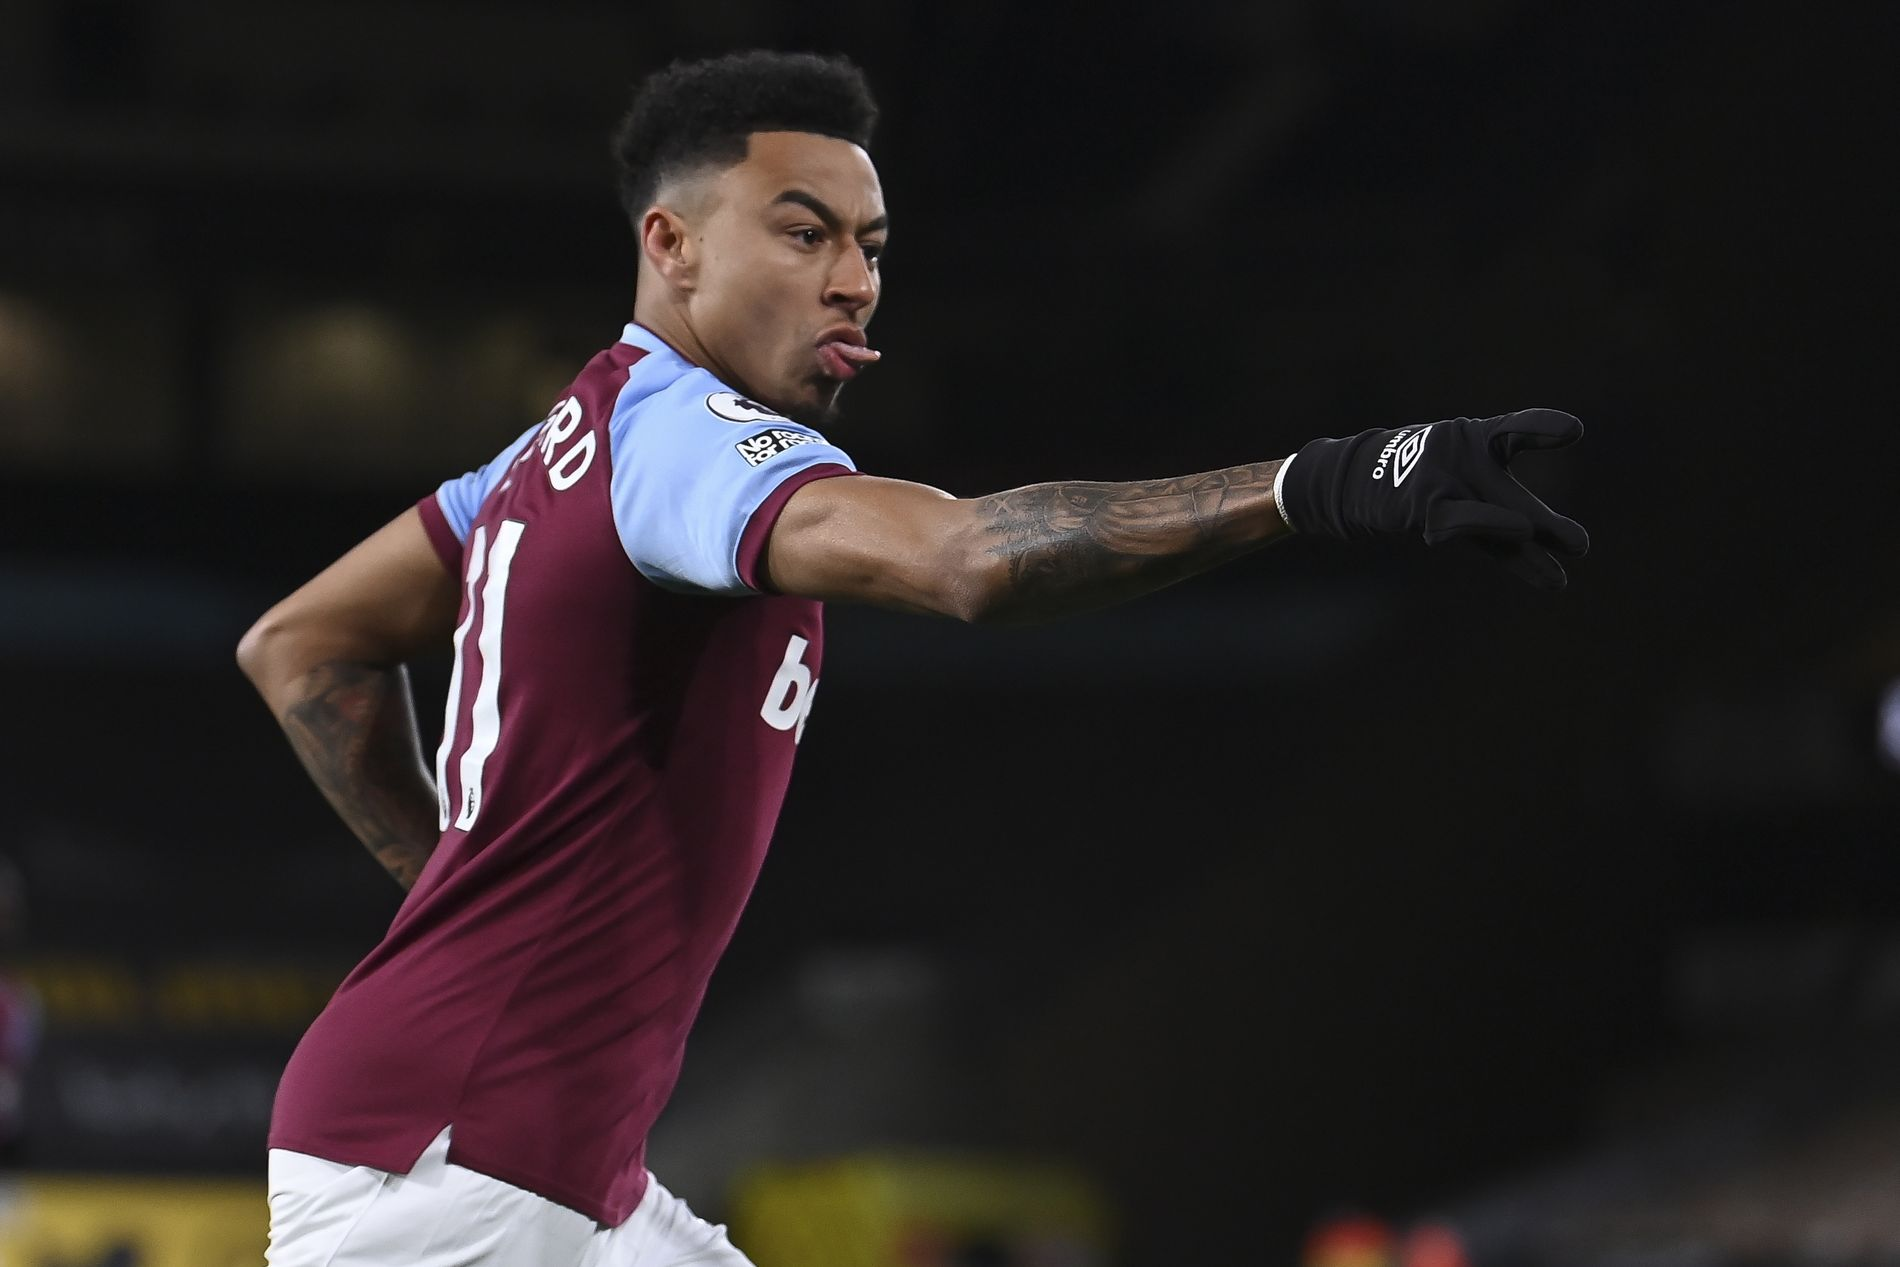 Lingard show when West Ham wins – VG